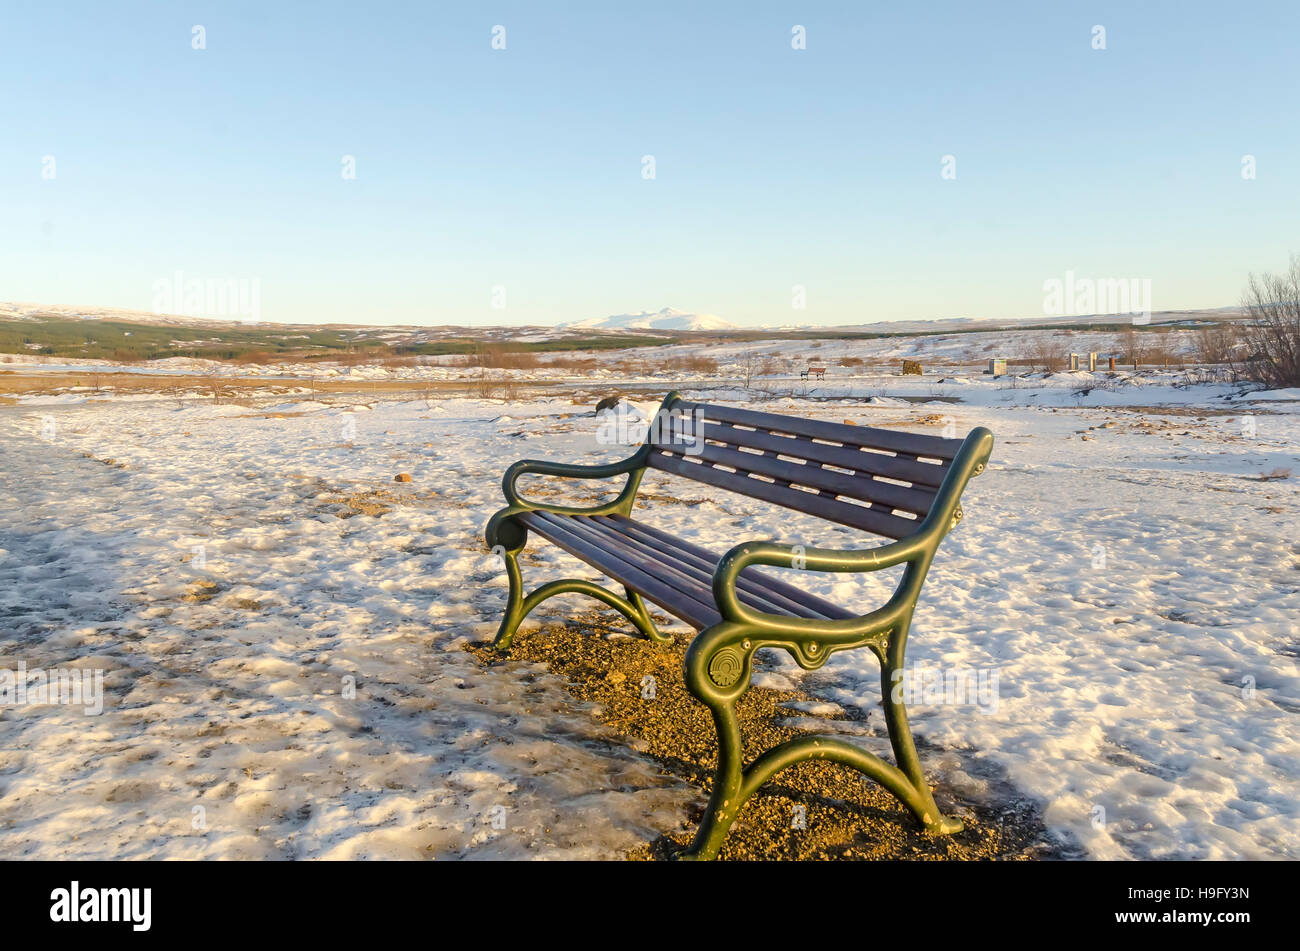 Empty Metal Bench winter deserted wilderness landscape on clear day. - Stock Image